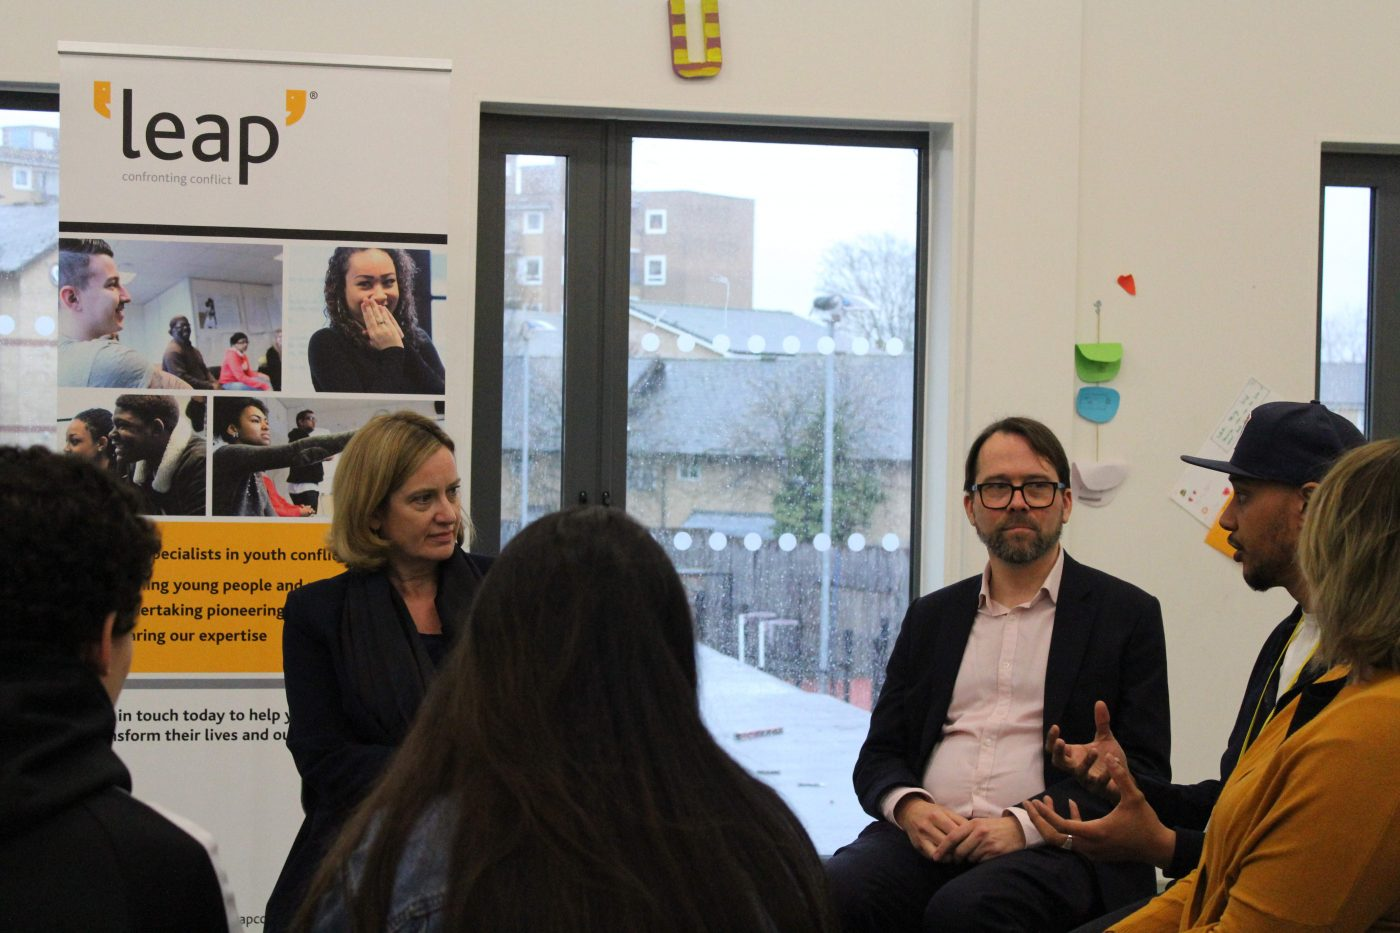 Home Secretary Amber Rudd visits the Qube